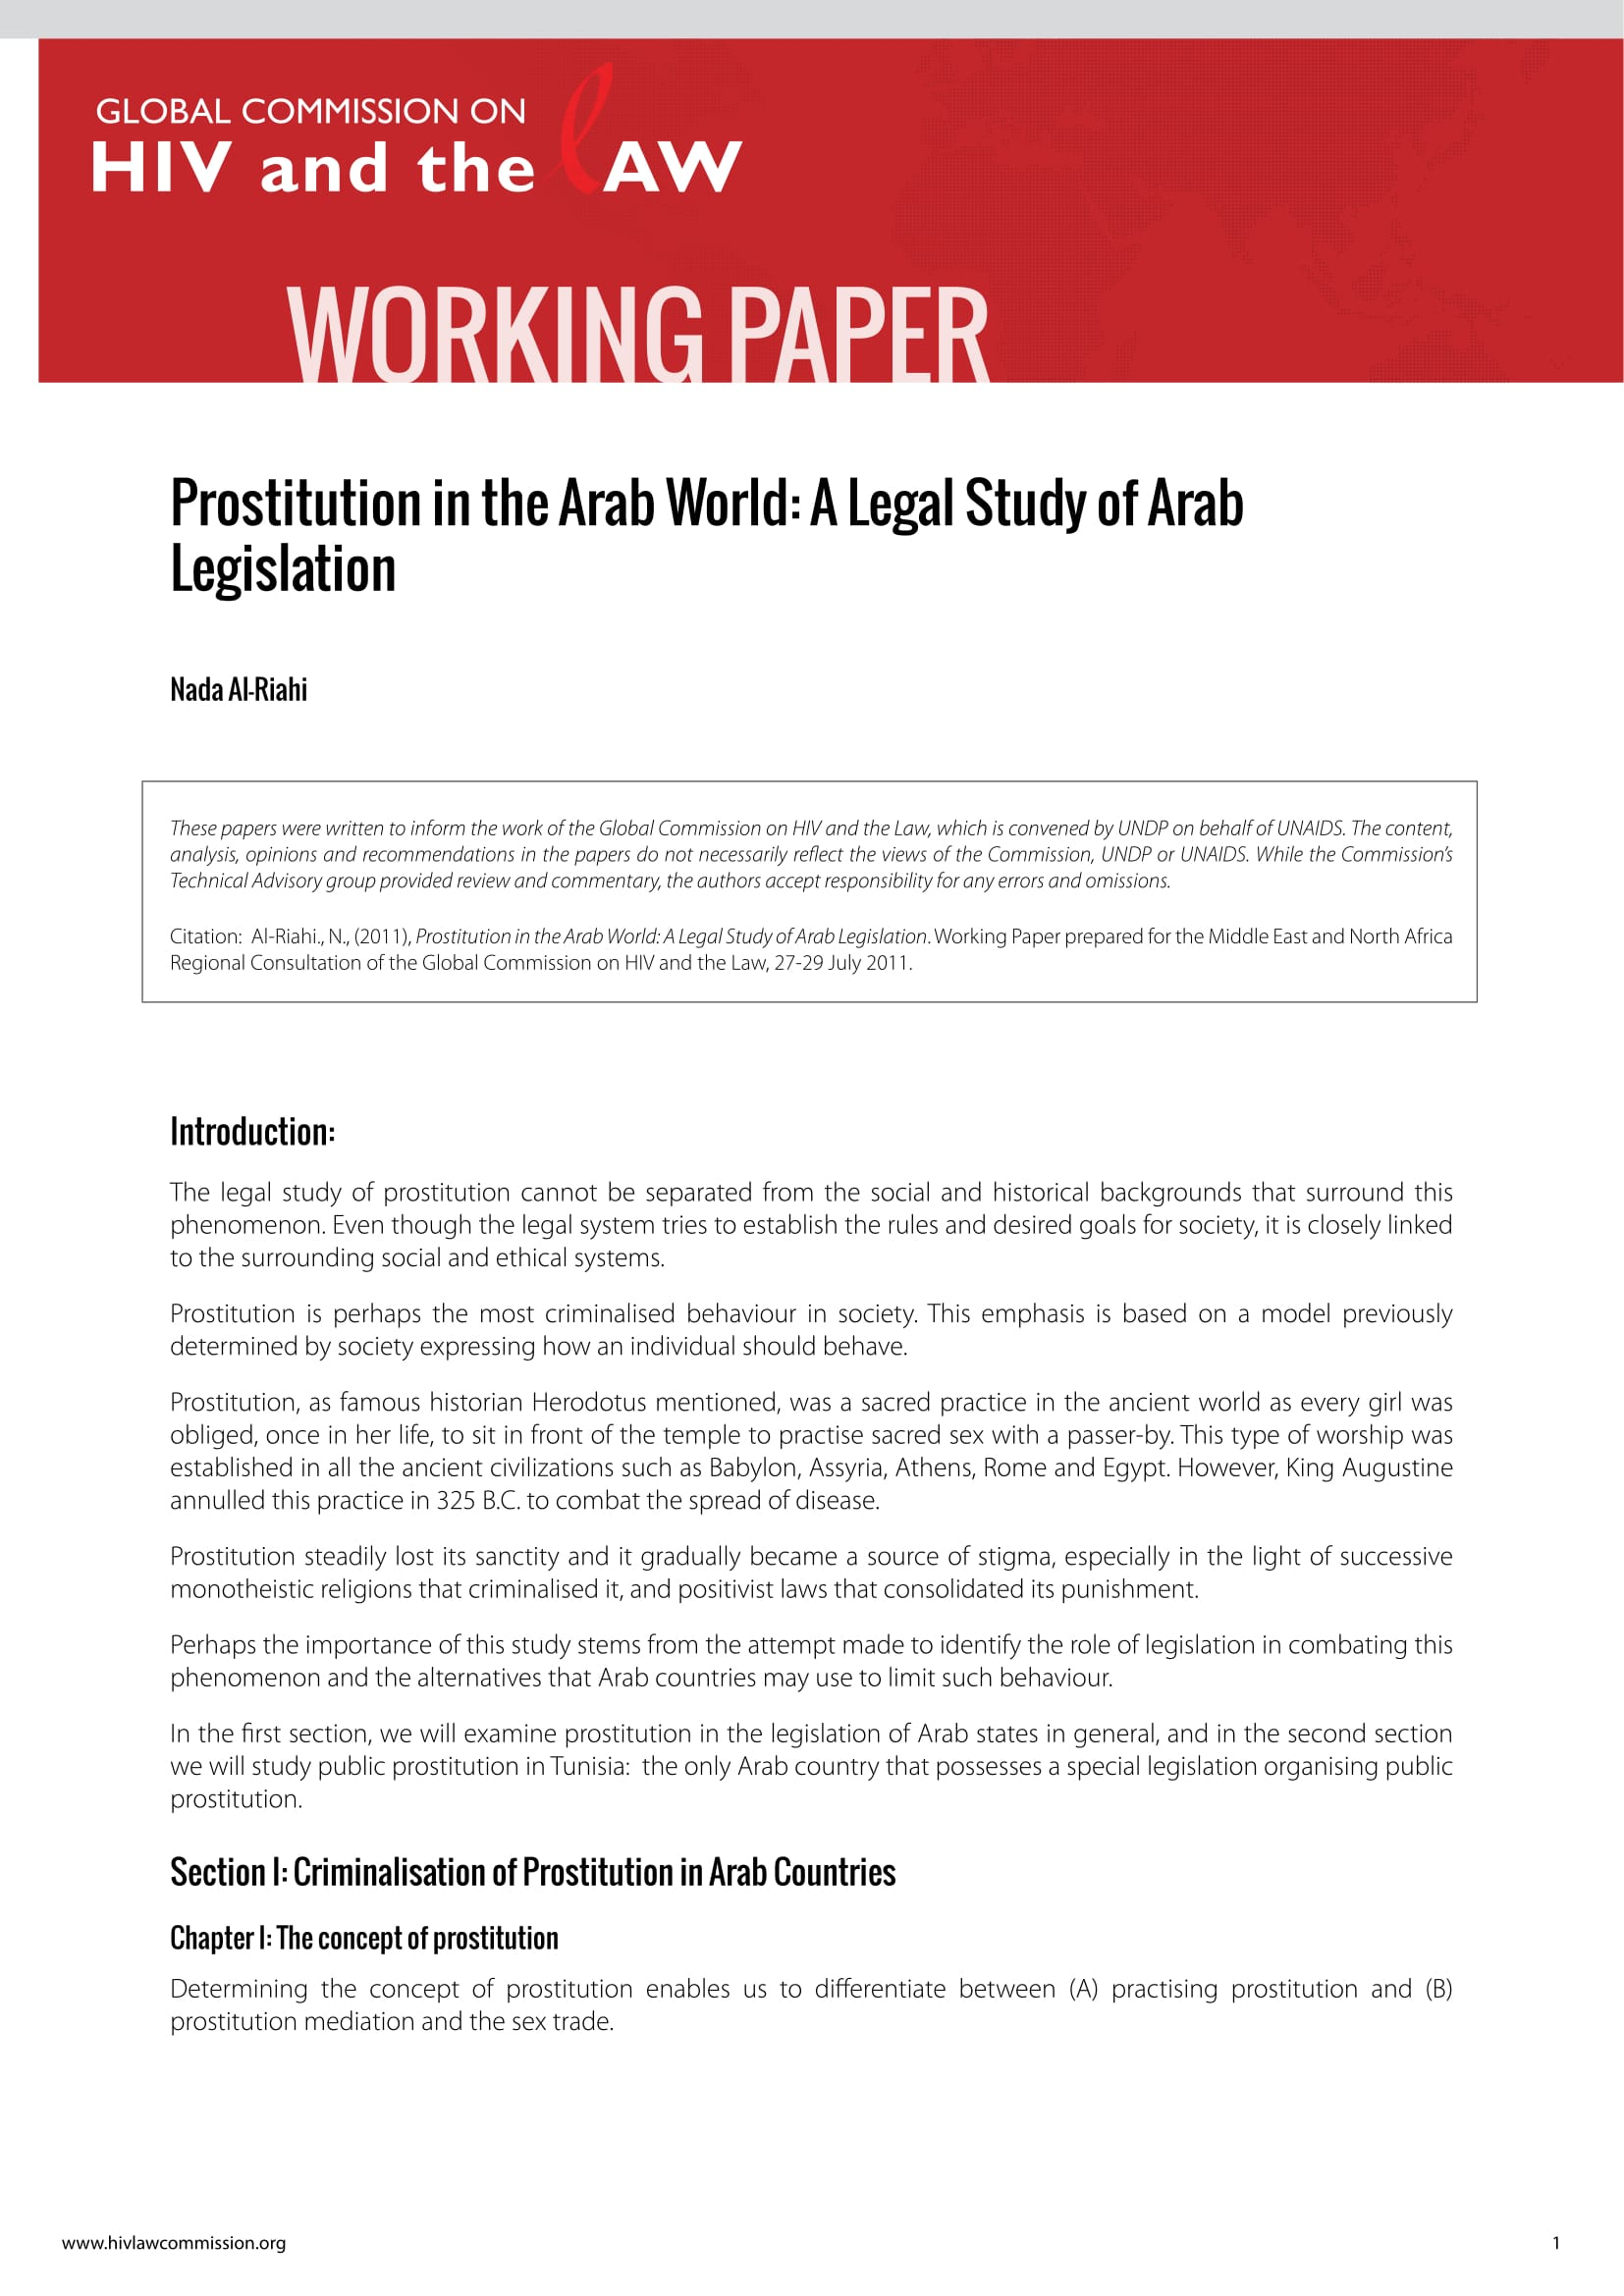 Prostitution in the Arab World: A Legal Study of Arab Legislation